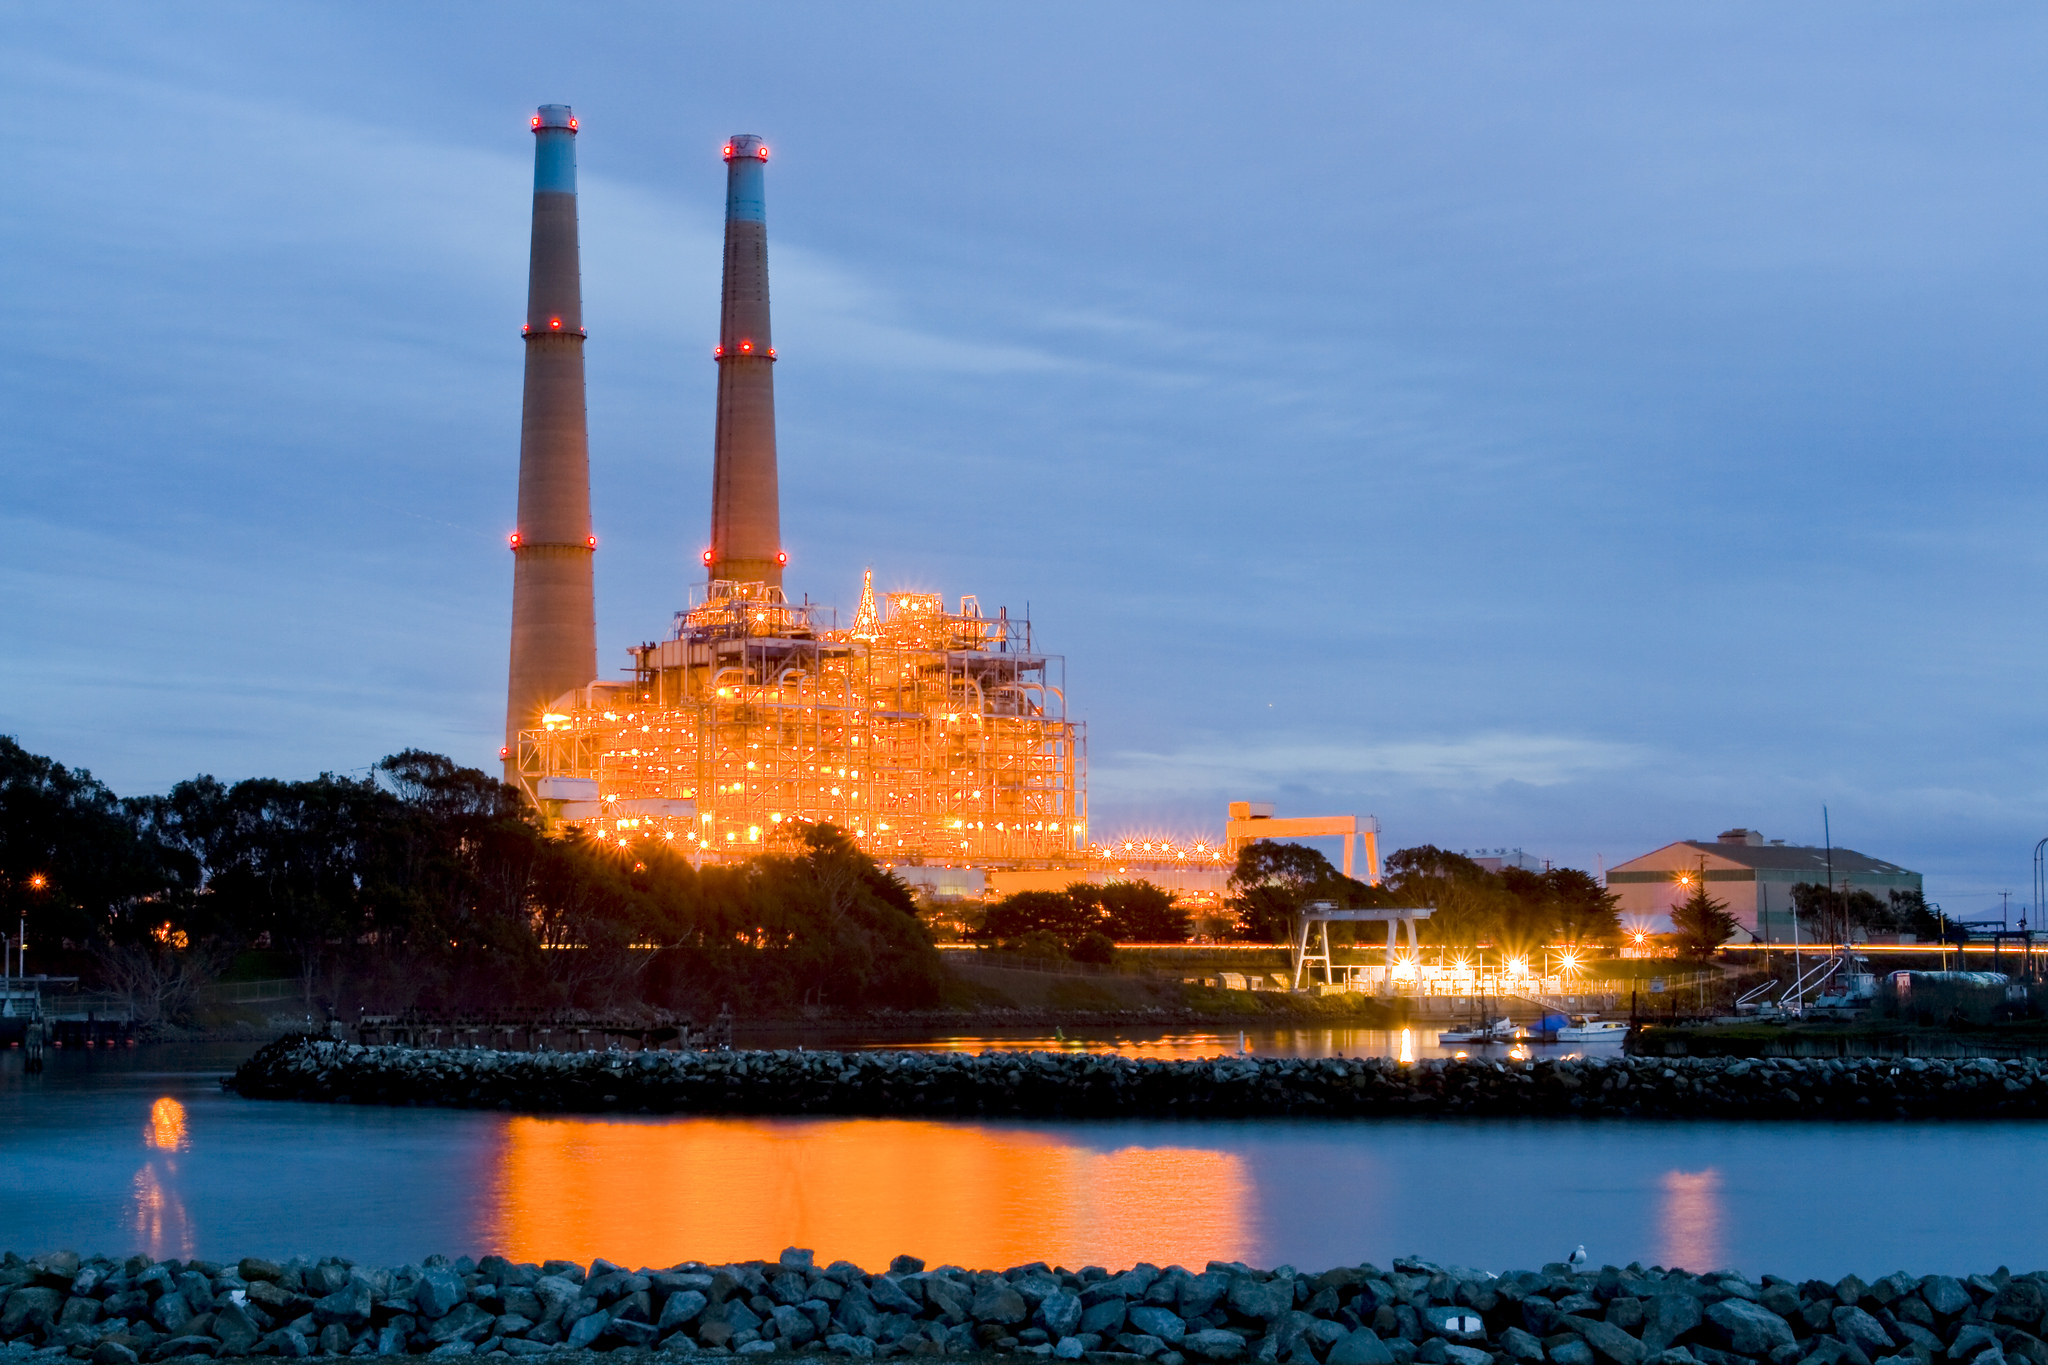 The $2.5 trillion reason we can't rely on batteries to clean up the grid - MIT Technology Review